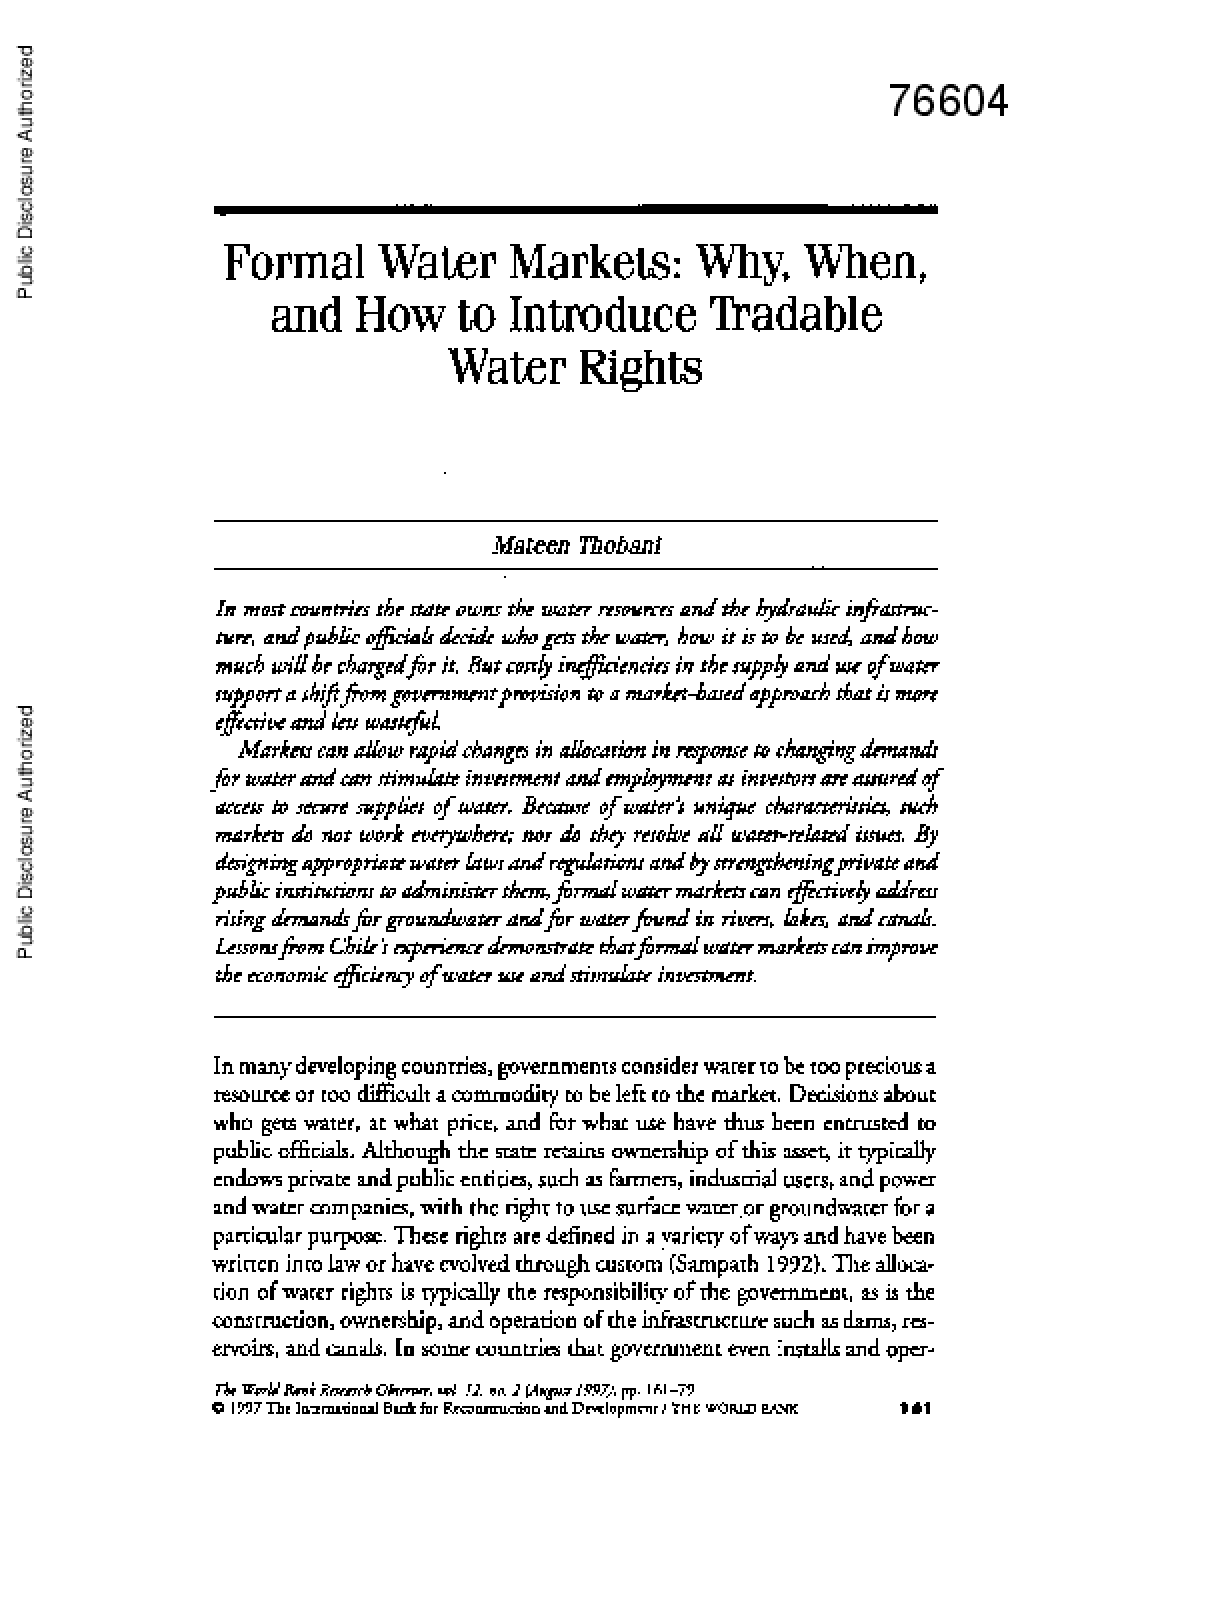 Formal Water Markets: Why, When, and How to Introduce Tradable Water Rights